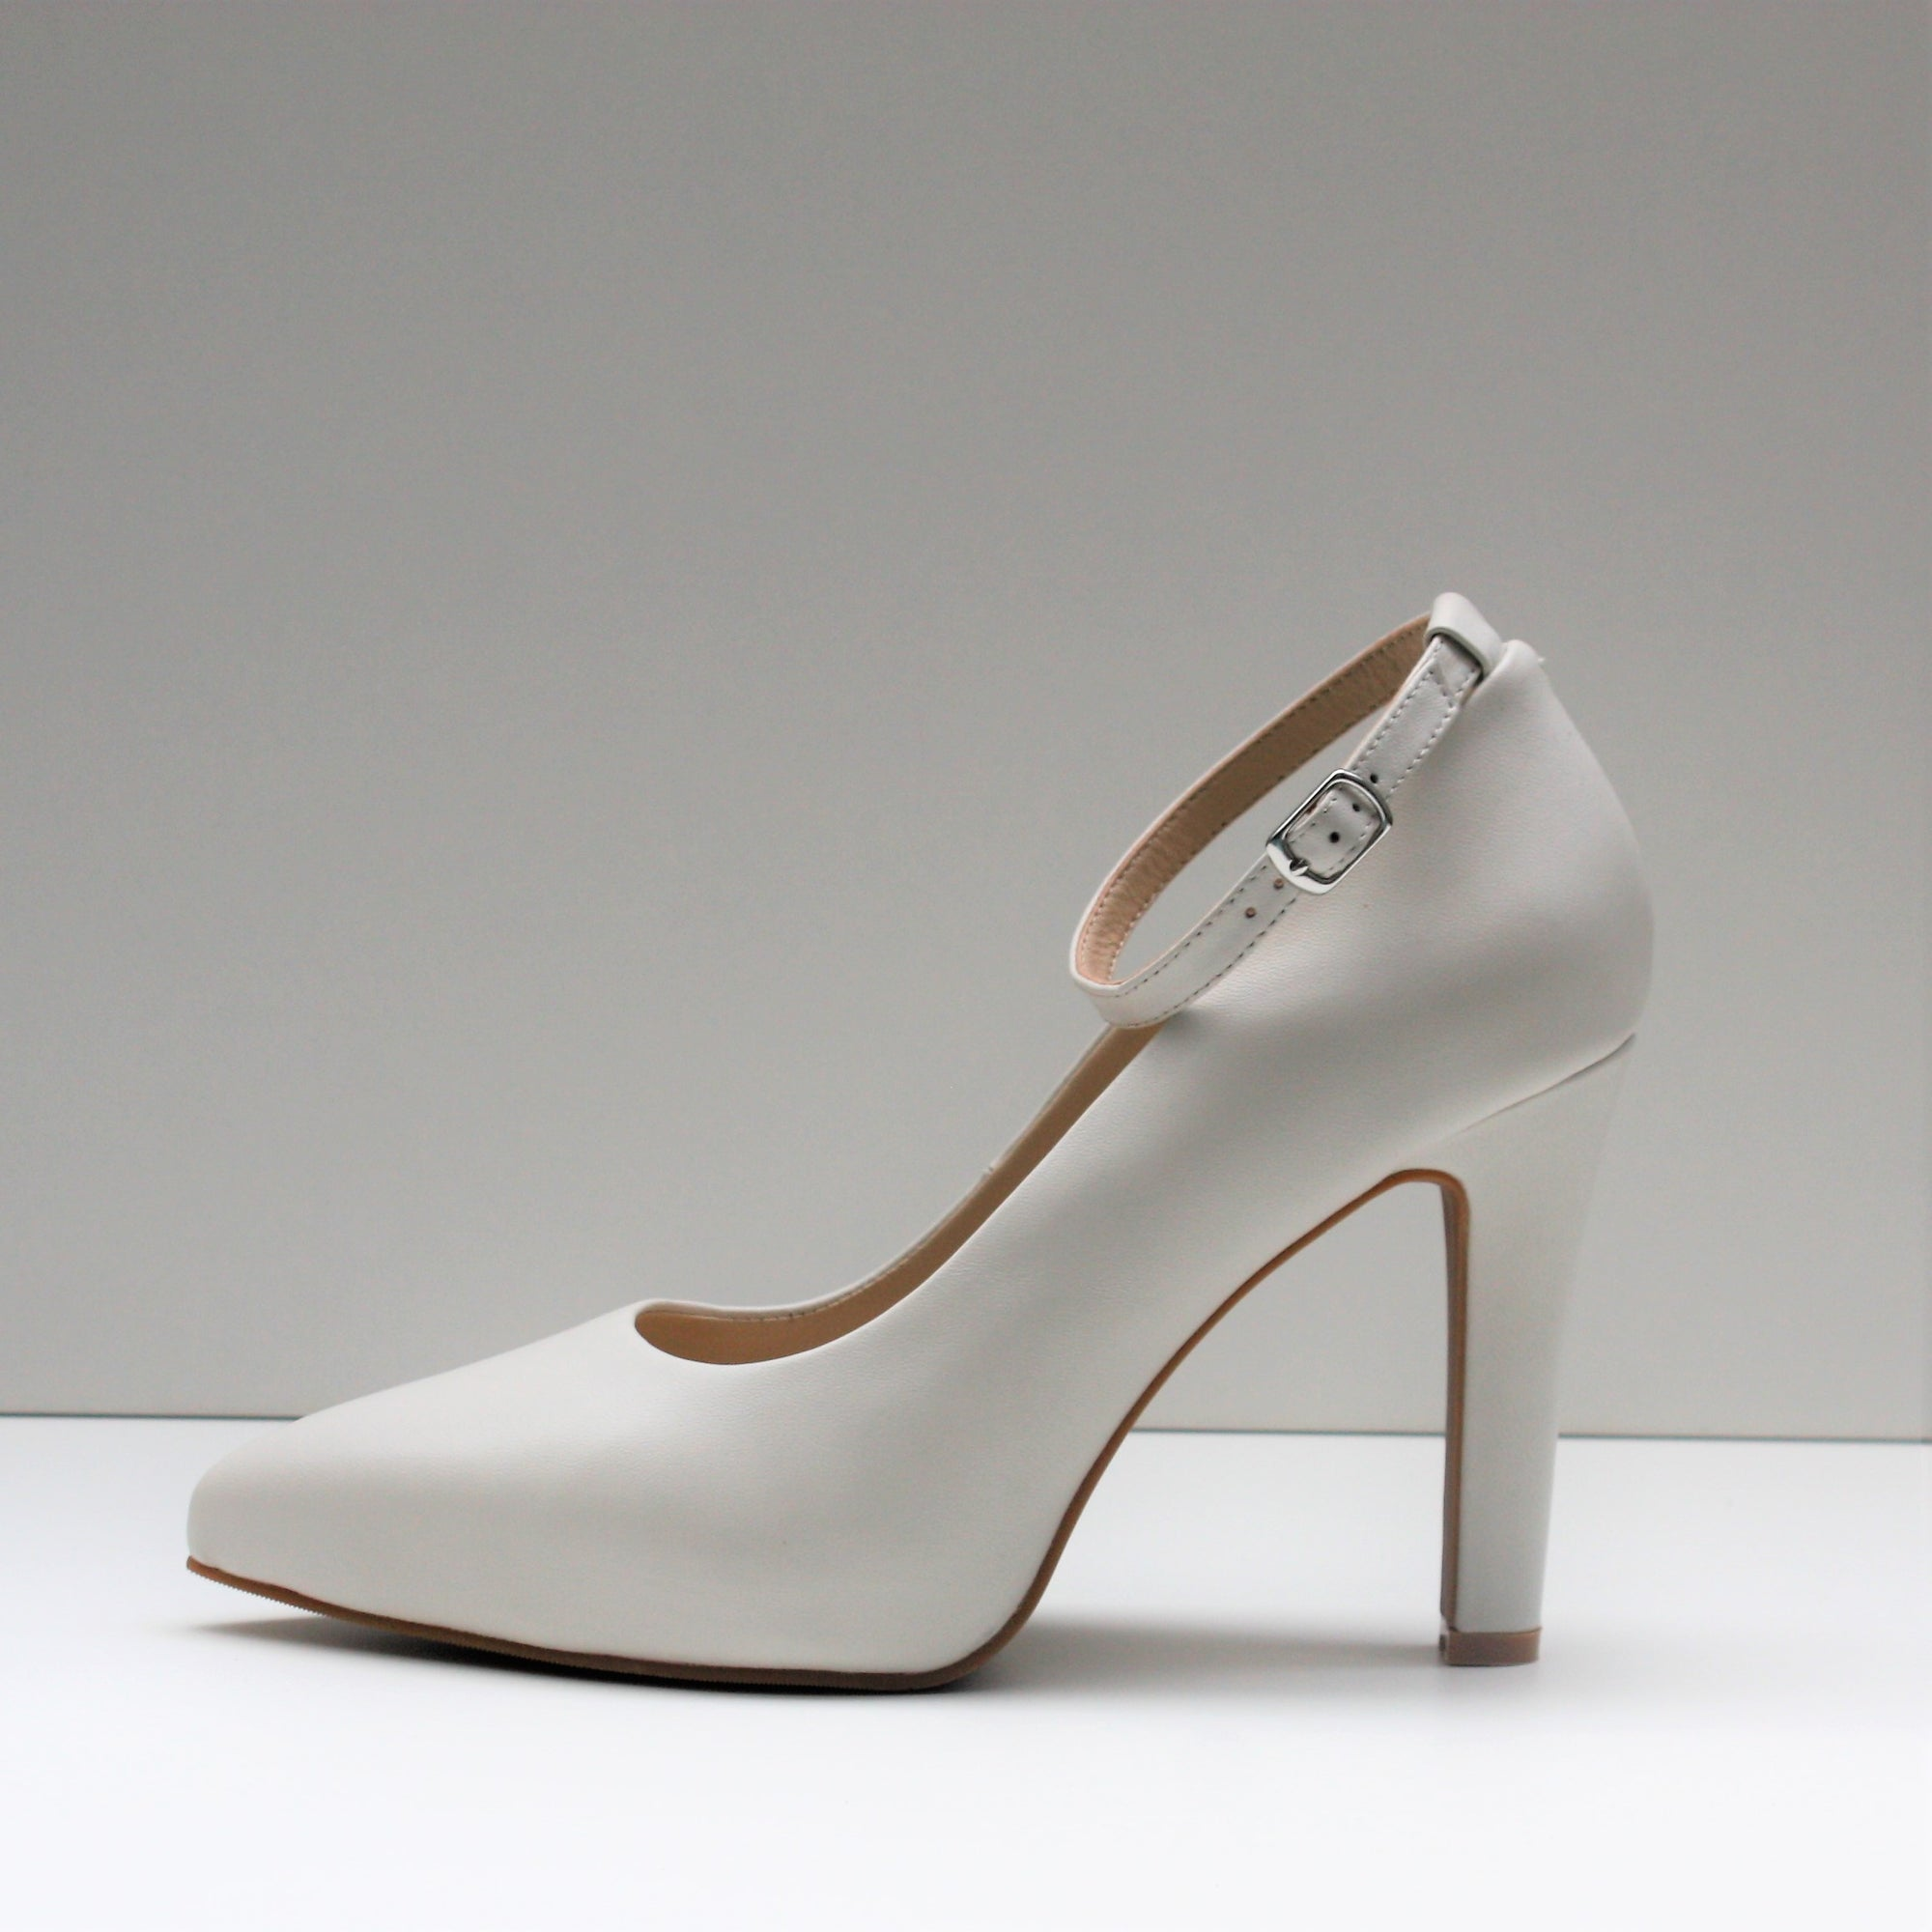 MAYA Off-White High Heel Pumps